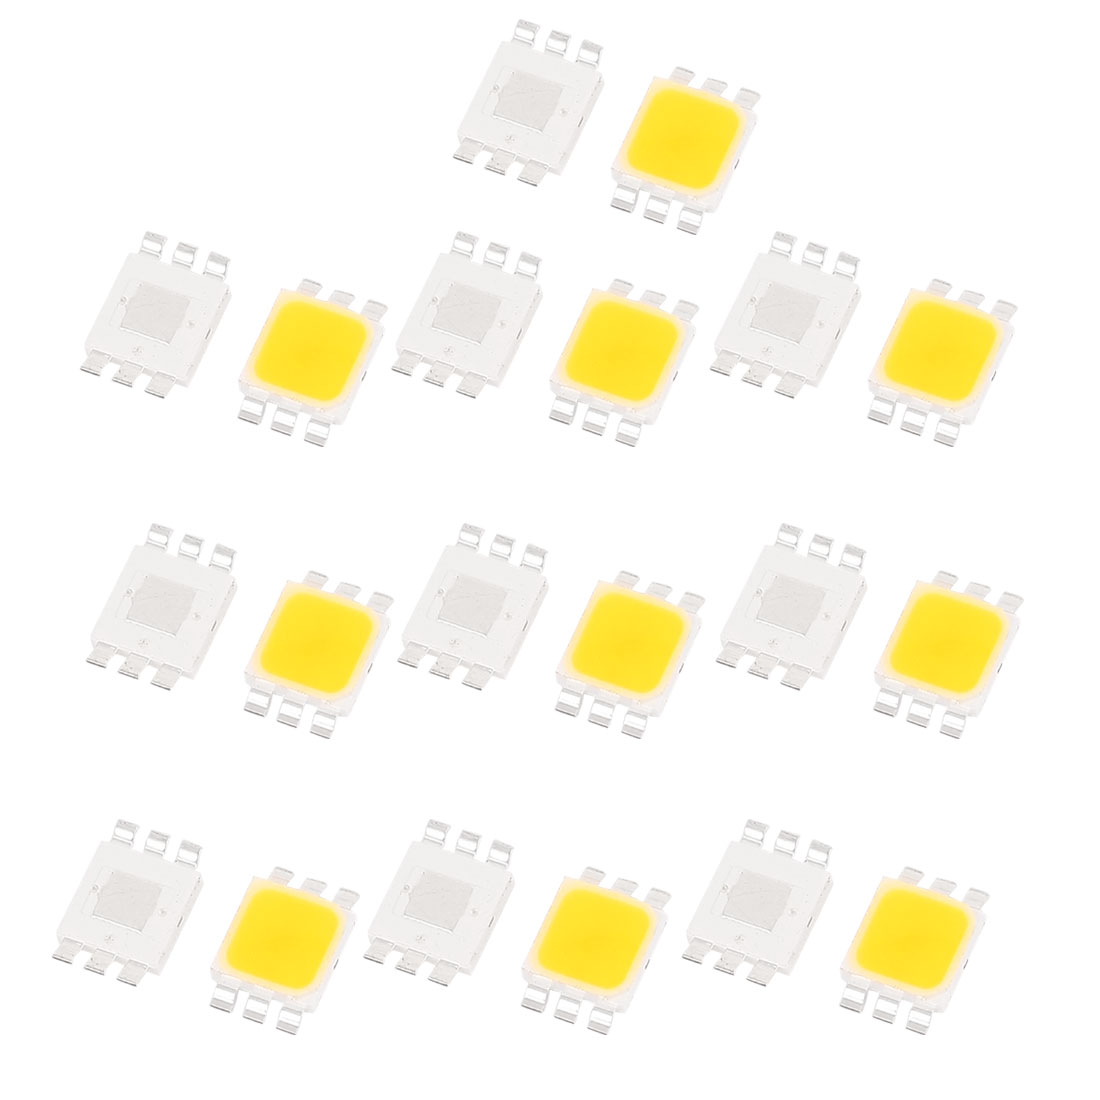 20 Pcs Warm White Light SMD 5050 LED Bead Chip Lamp 3.0-3.6V 350mA 1W 80LM